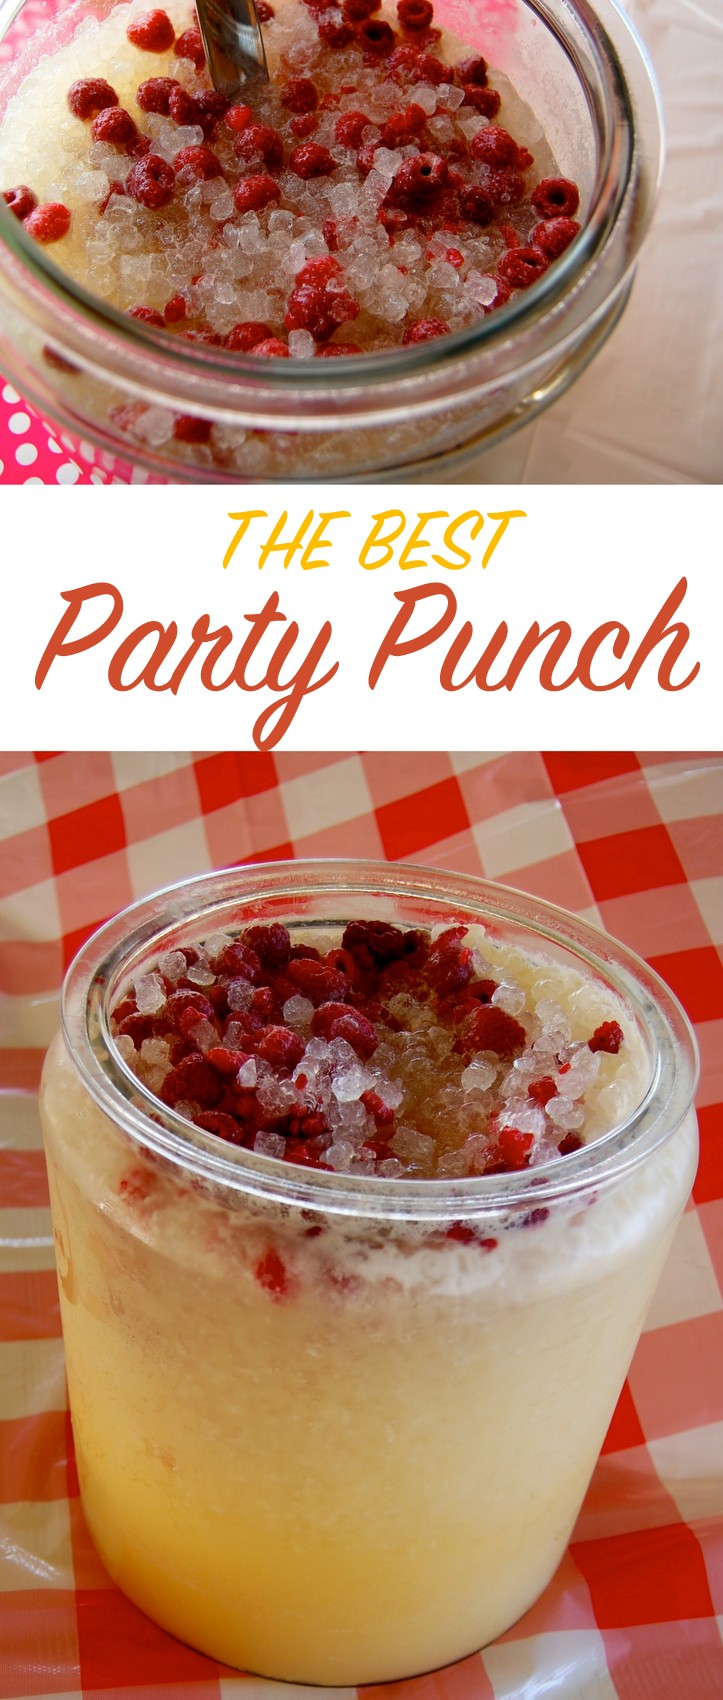 The best party punch! Great for serving a crowd